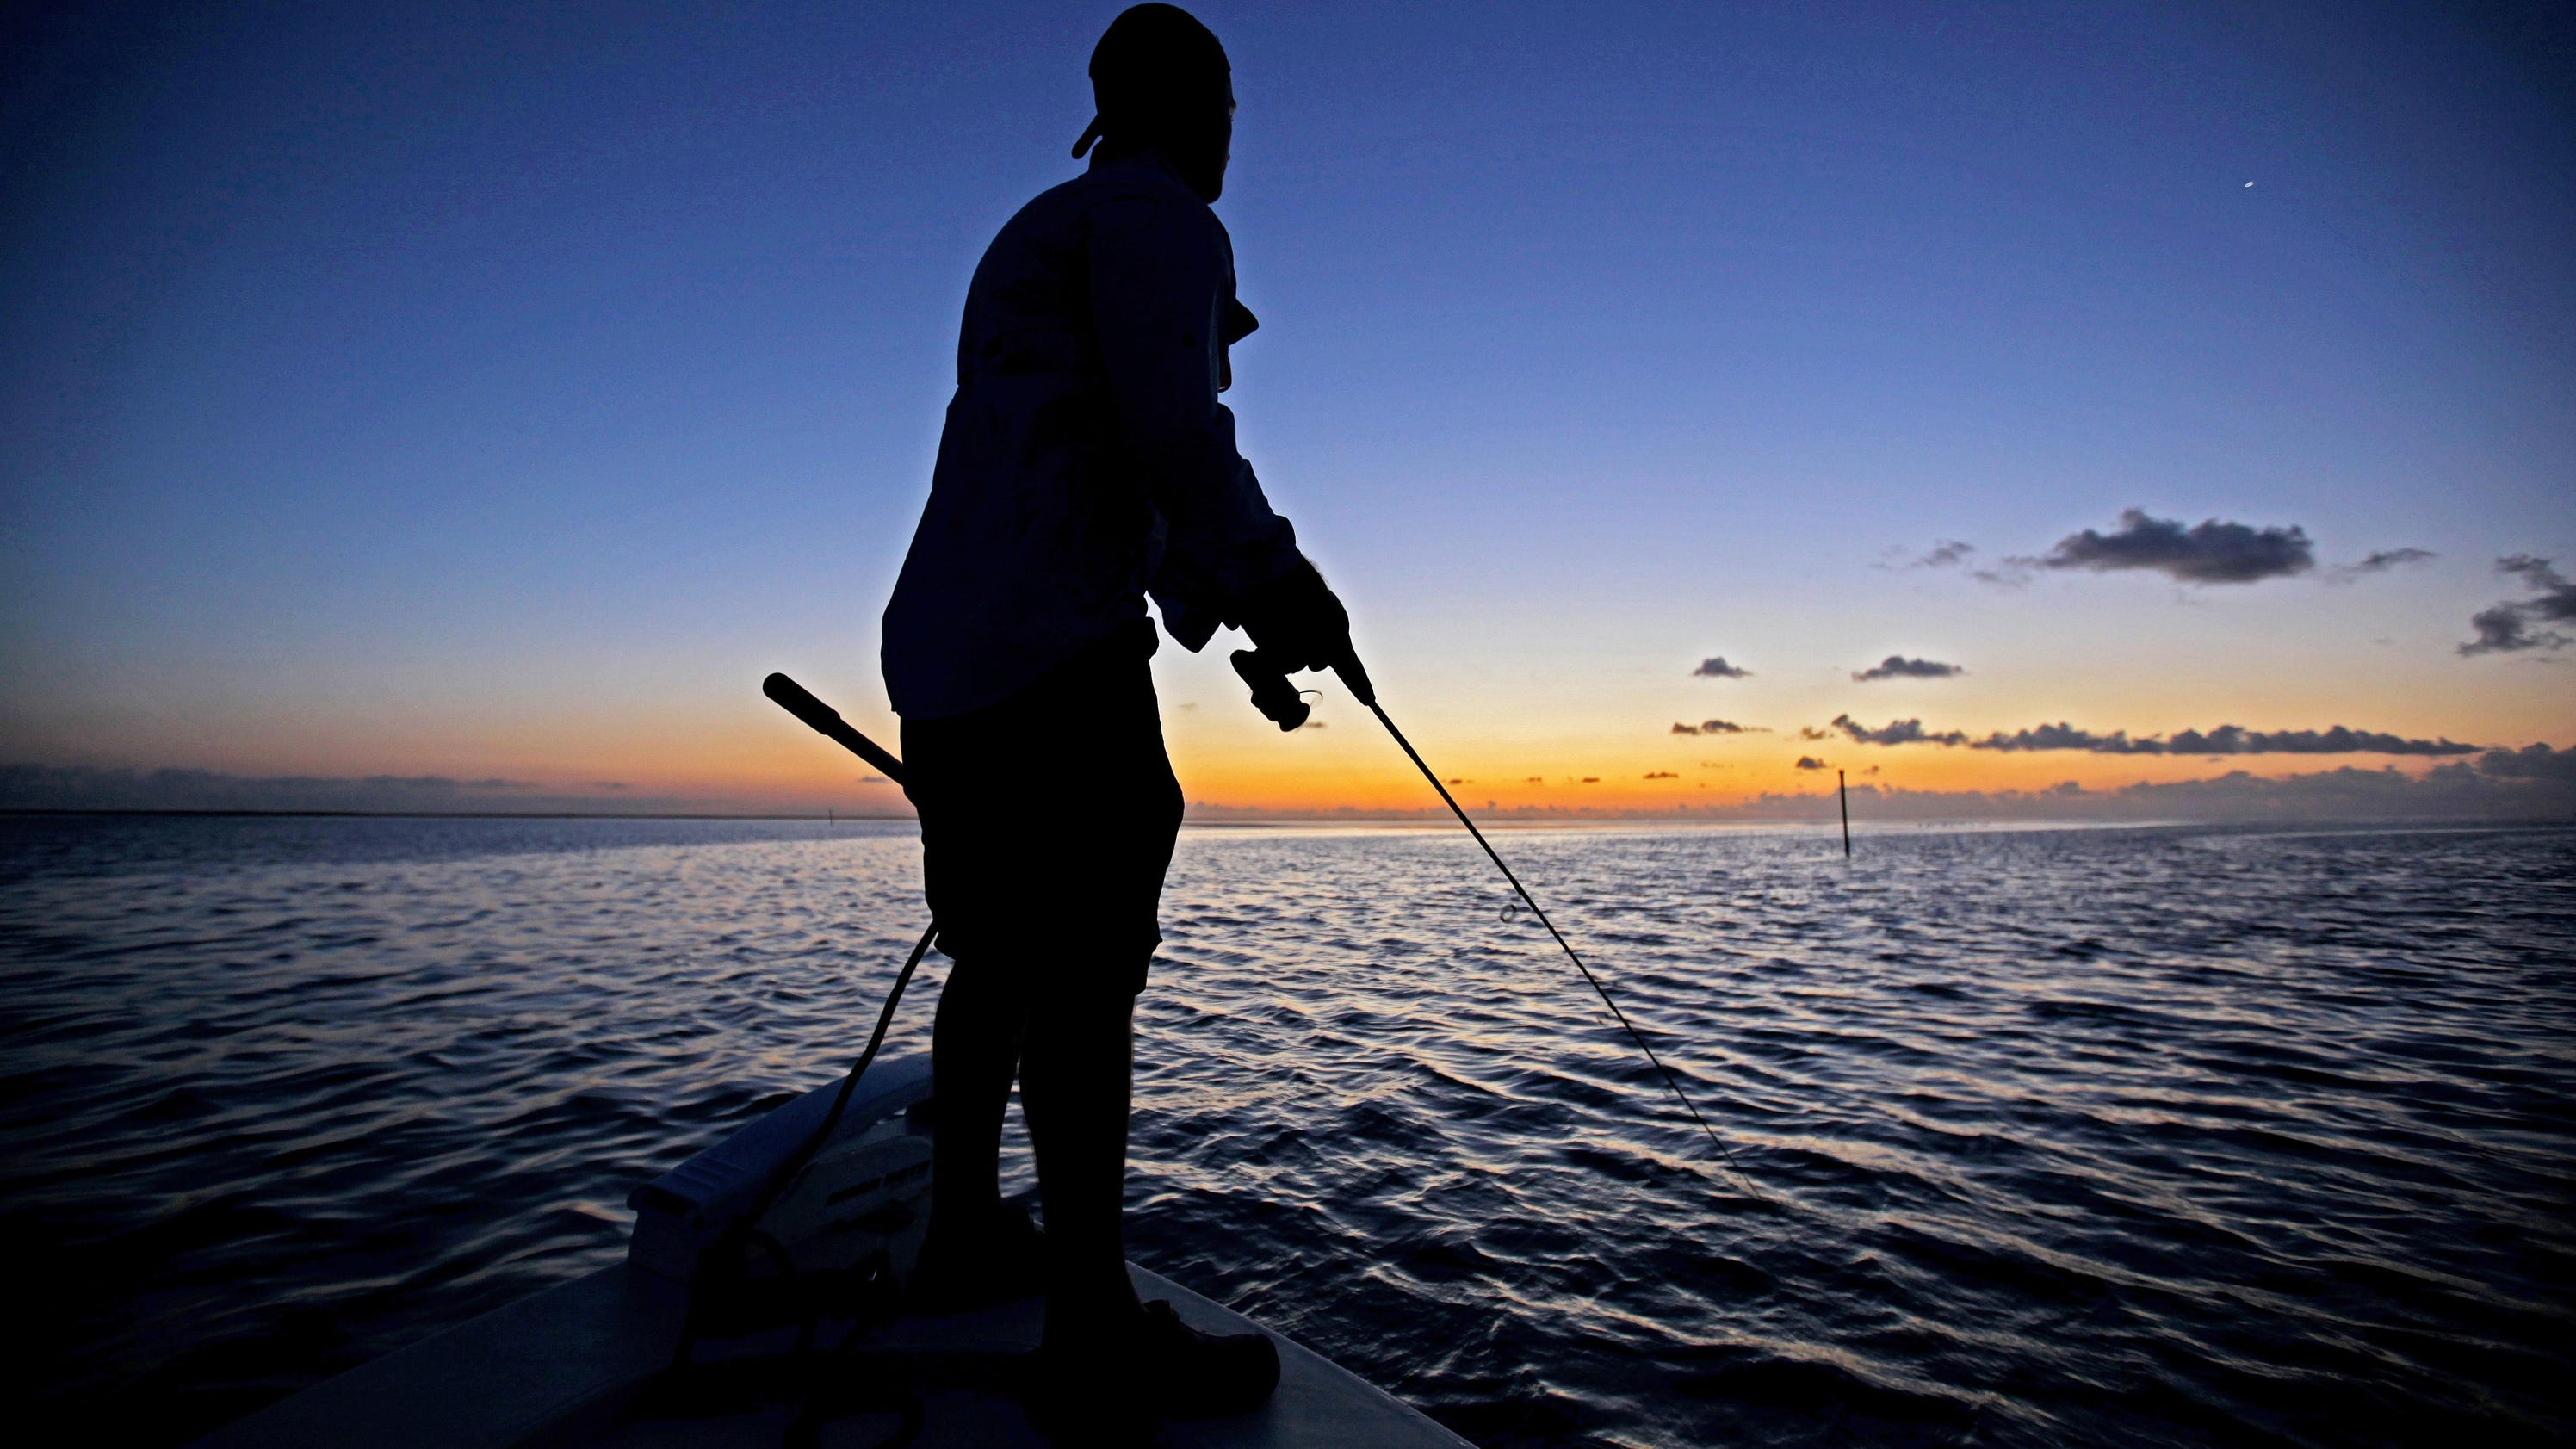 Everglades national park no 1 top spot for family fishing for Fishing spots near me no boat